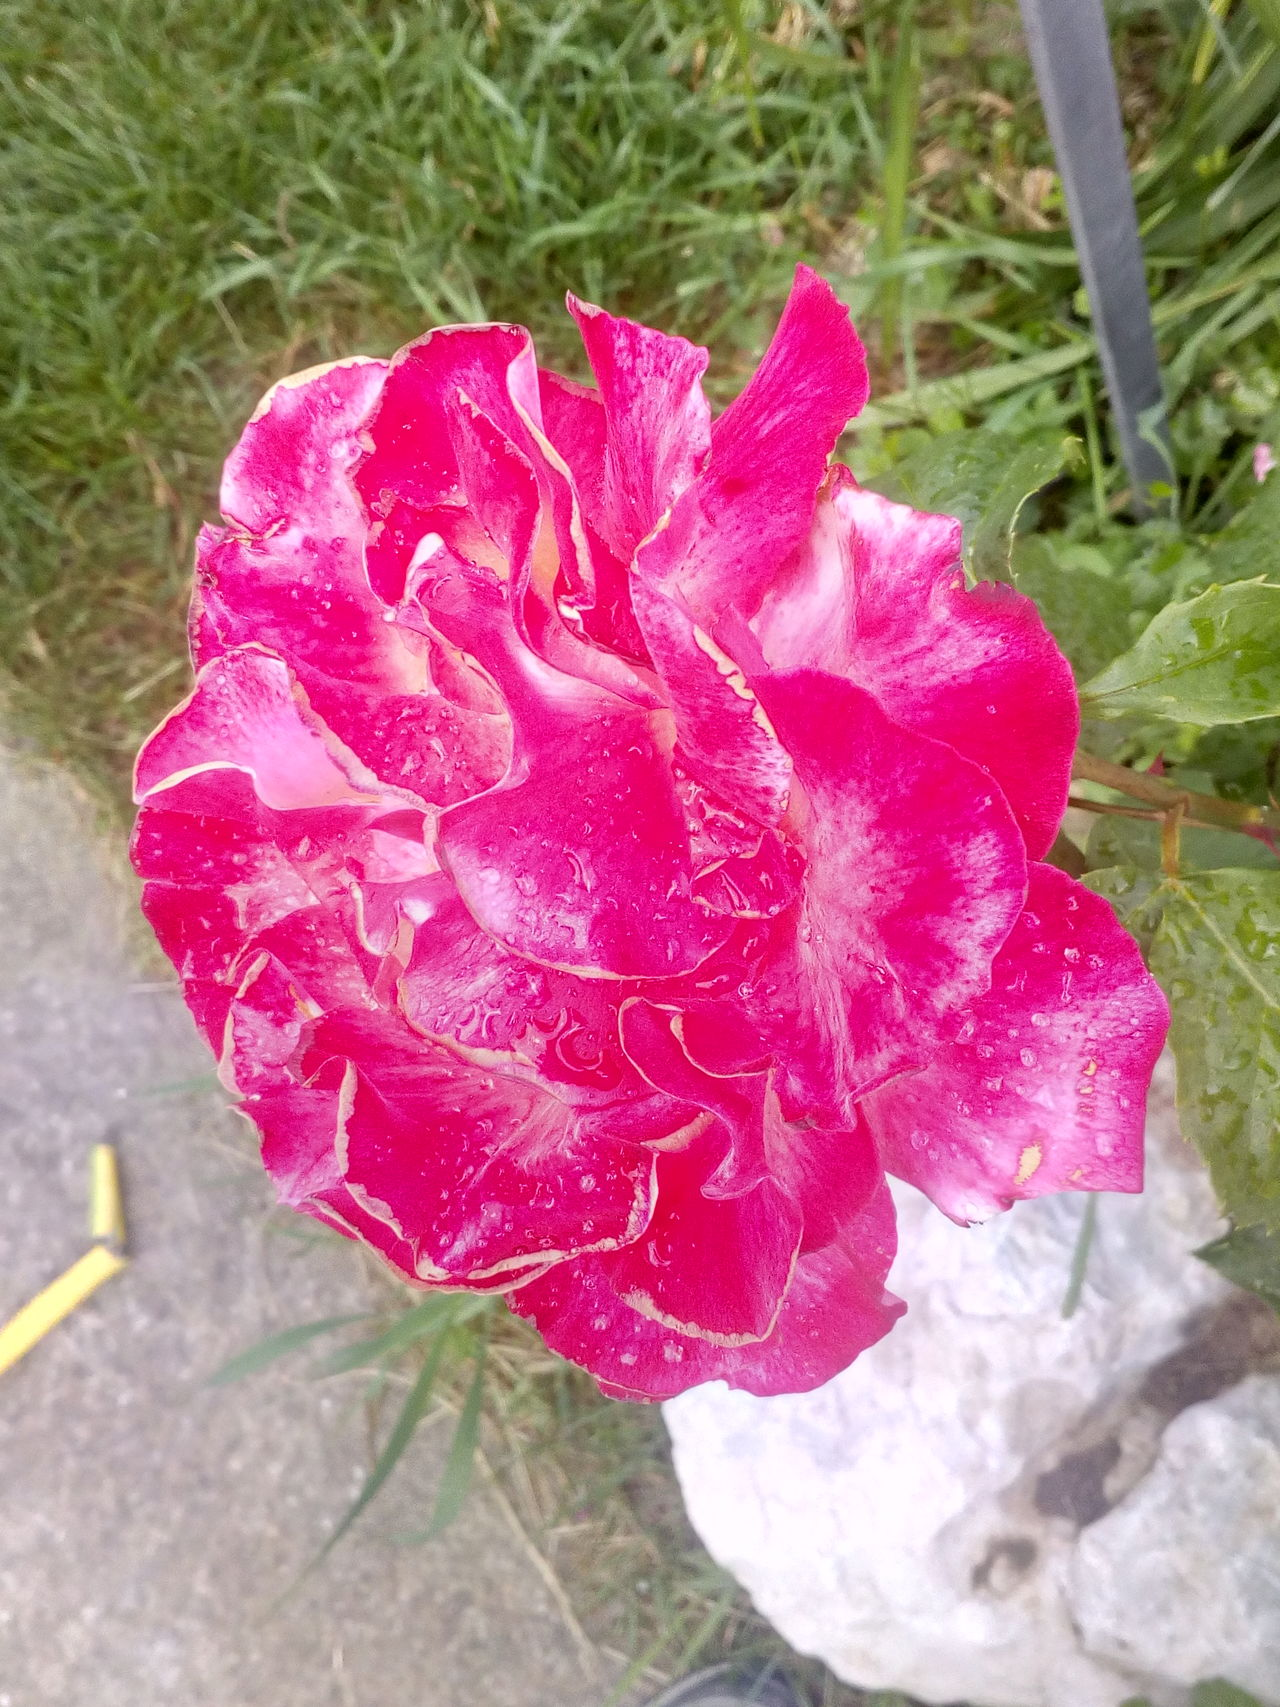 Nature Flower Beauty In Nature Outdoors Plant No People Flower Head Freshness Petal Rose - Flower